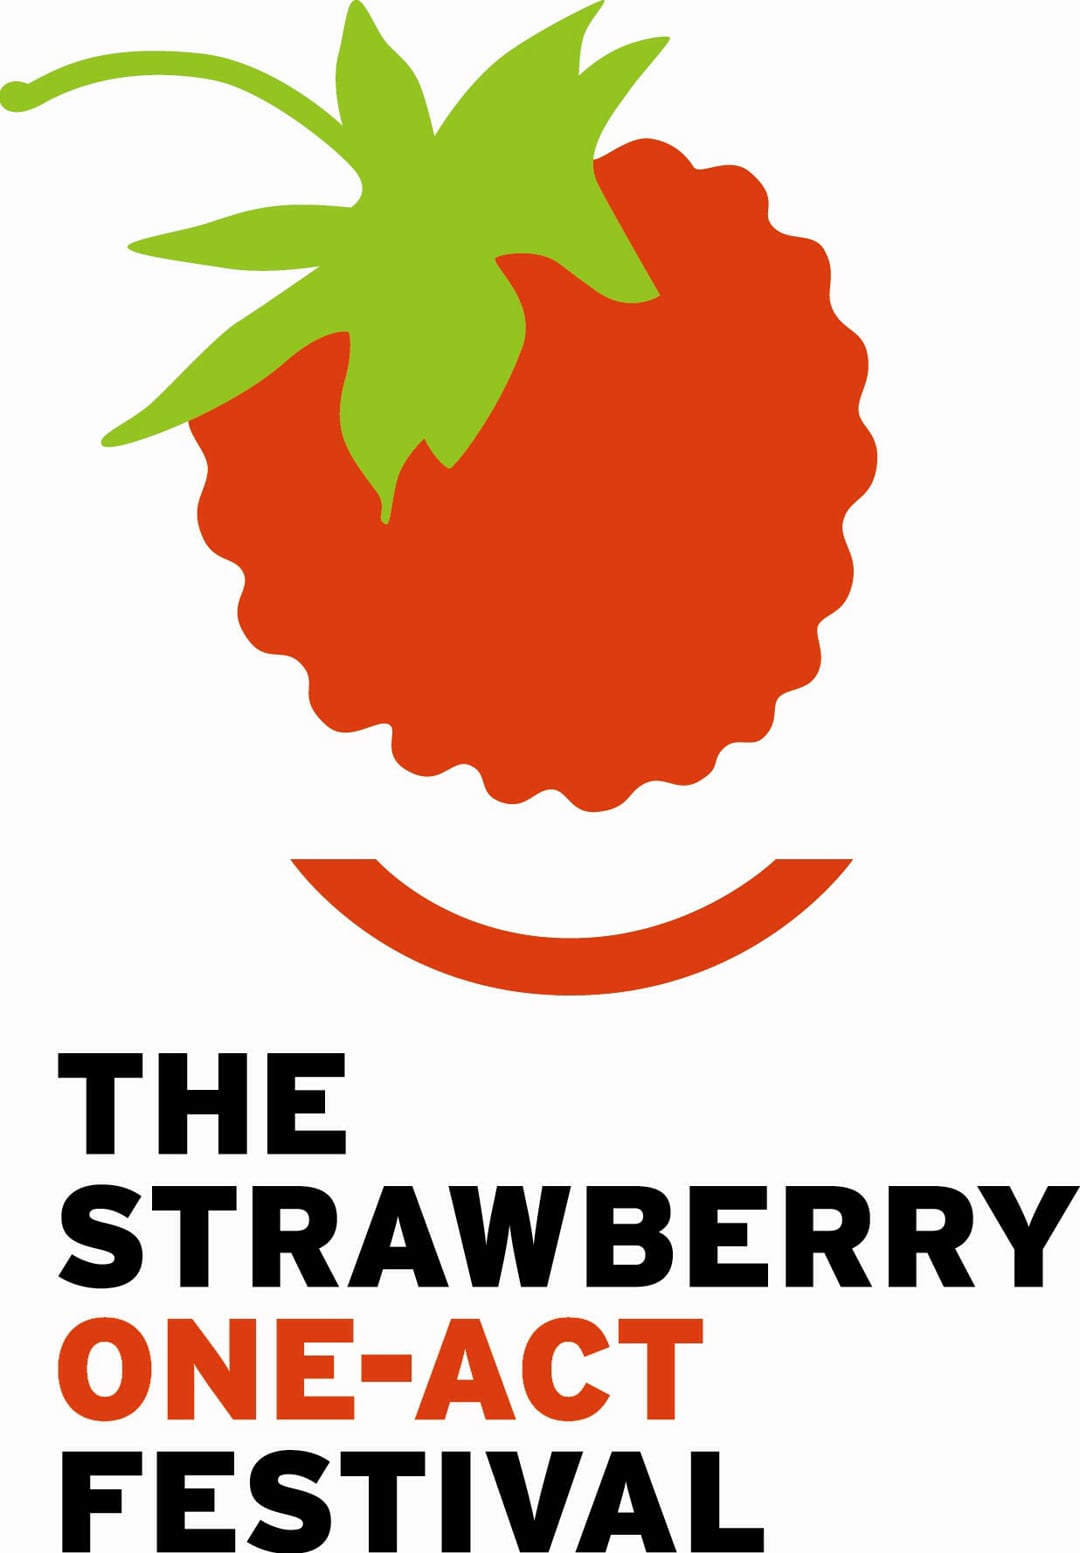 The Strawberry One-Act Festival